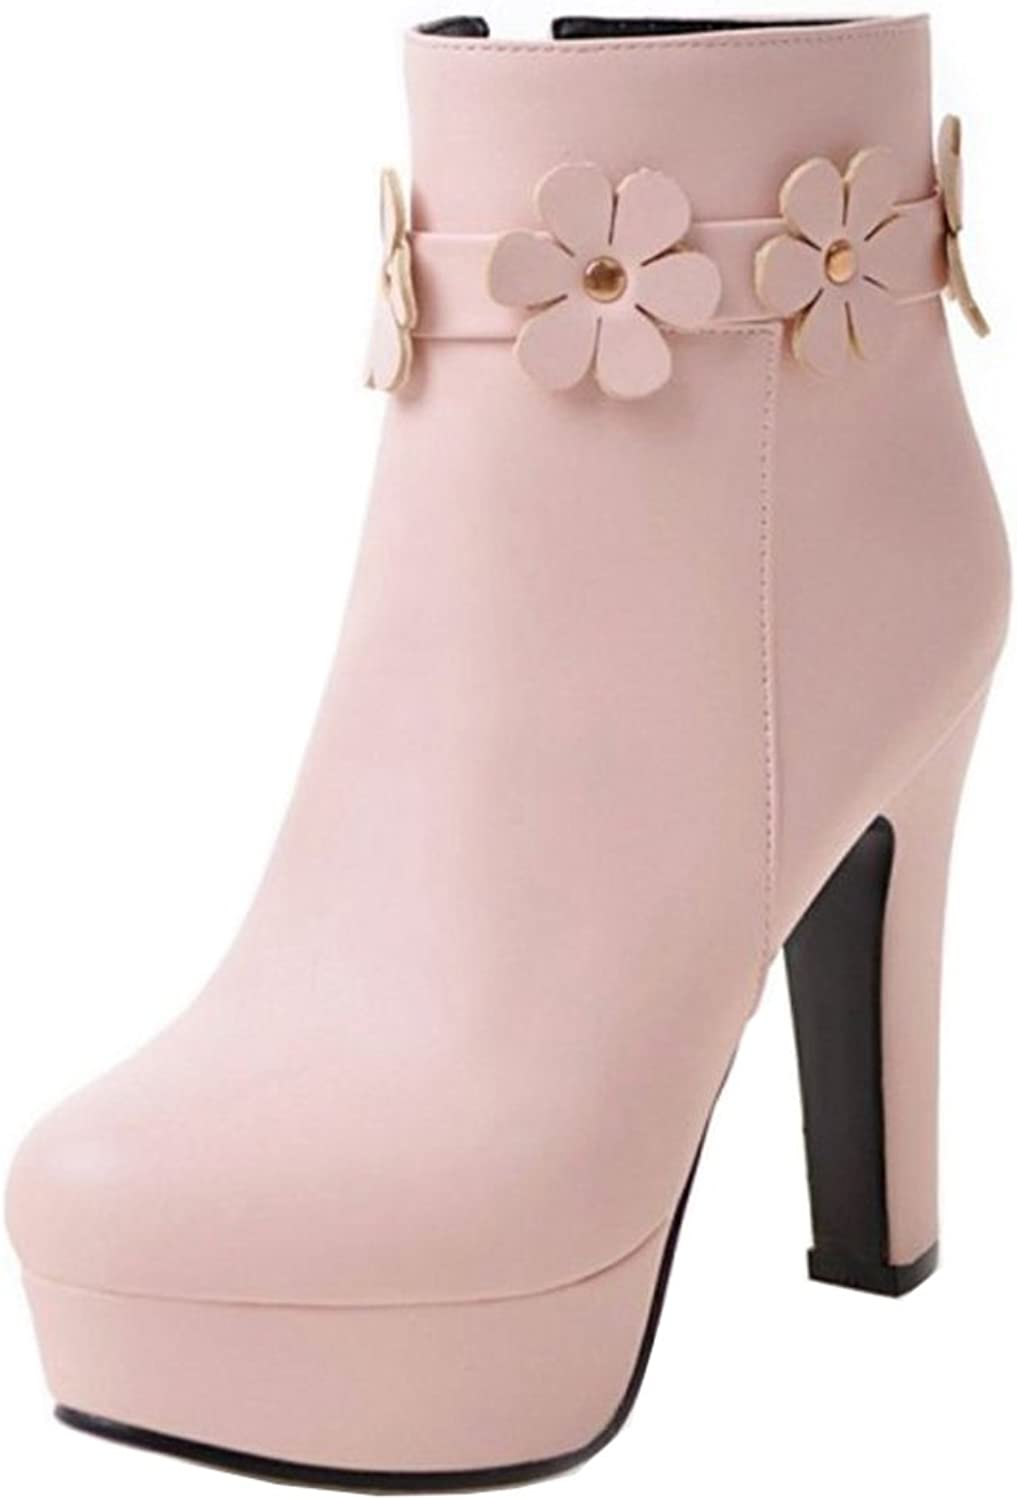 Smilice Women Dressy High Block Heel Zip Platform Ankle Booties with Sweet Flower Strap Beige